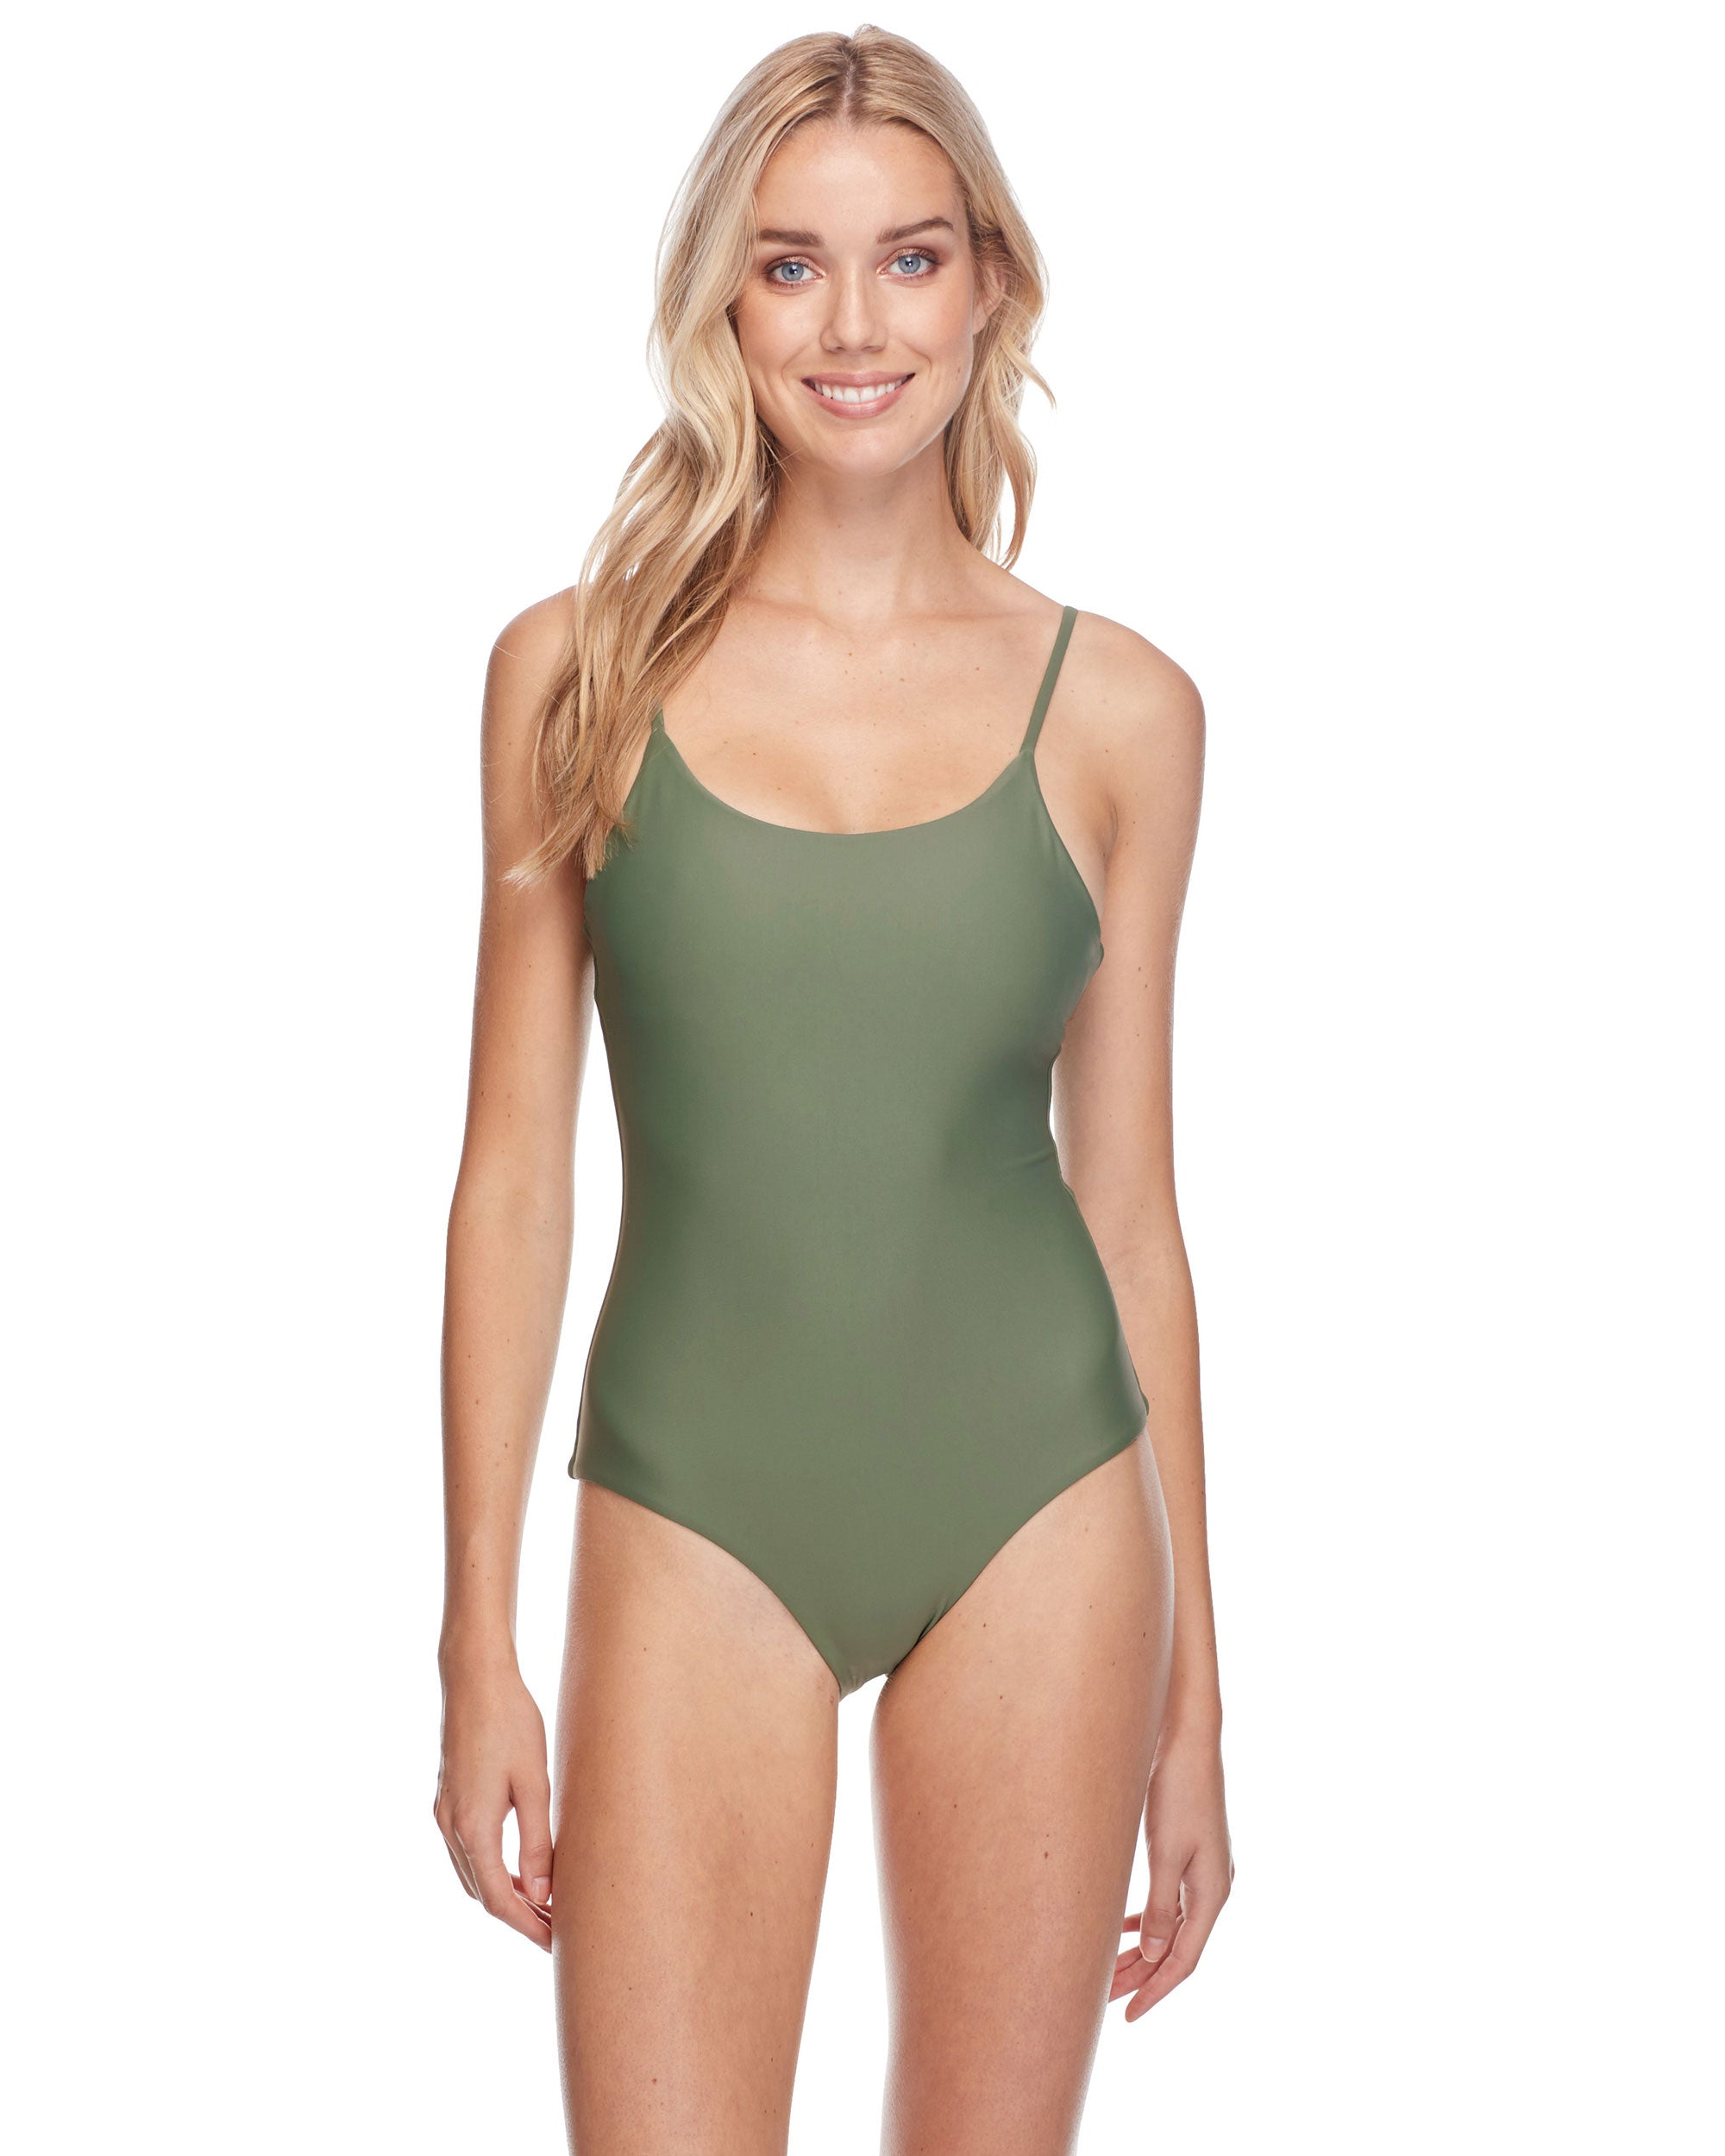 Smoothies Simplicity One-Piece Swimsuit - Cactus